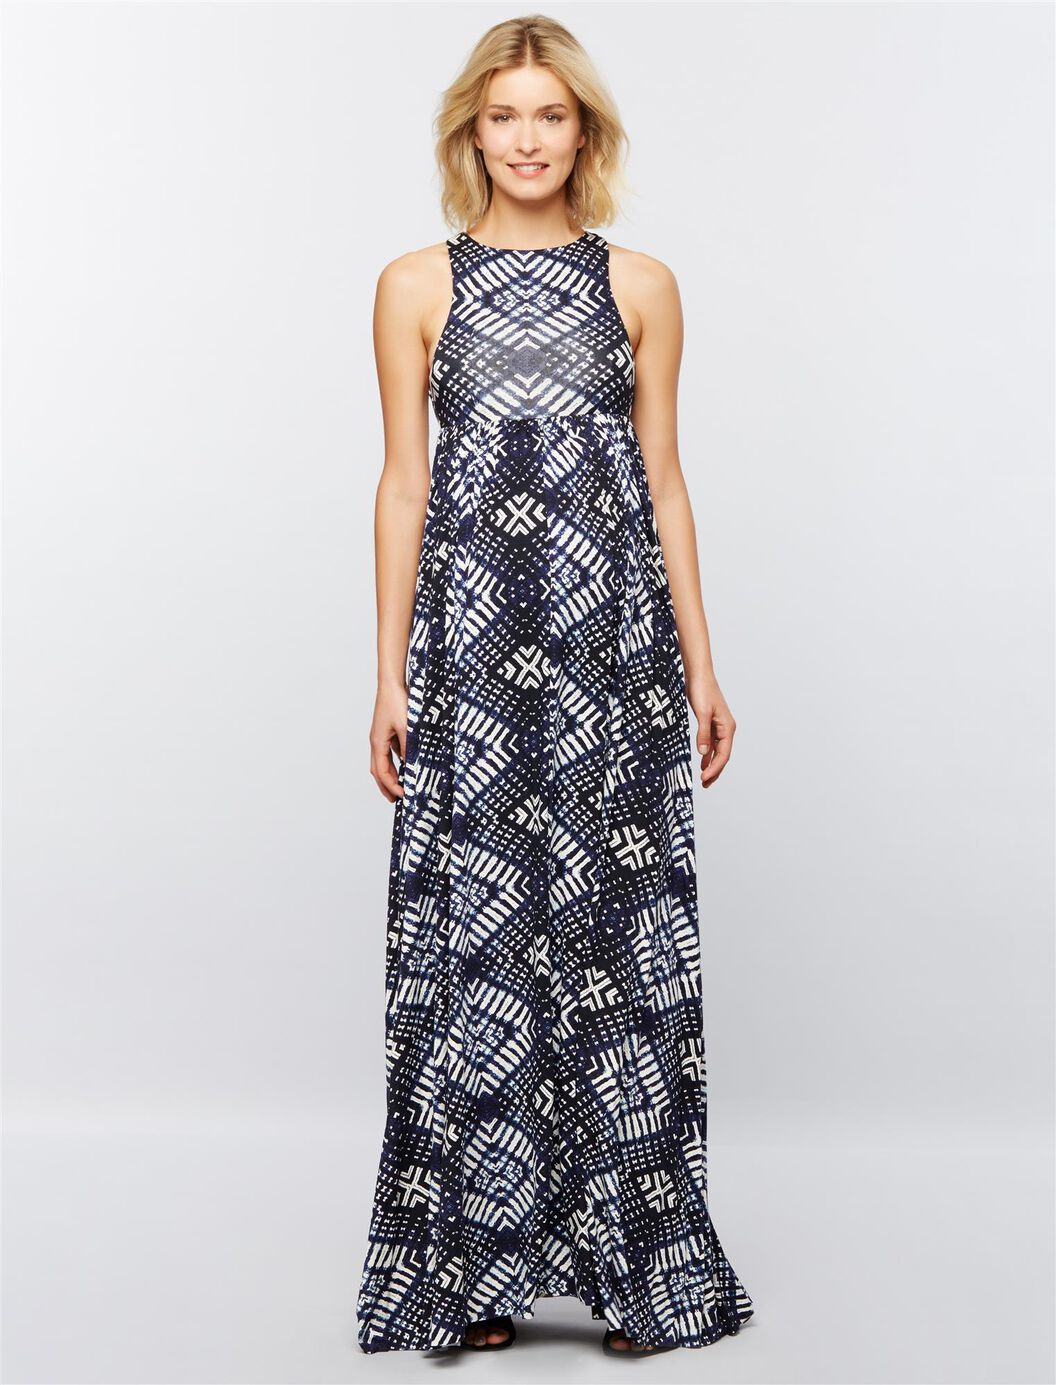 Rachel pally anya maternity dress a pea in the pod maternity rachel pally anya maternity dress ikat print ombrellifo Images